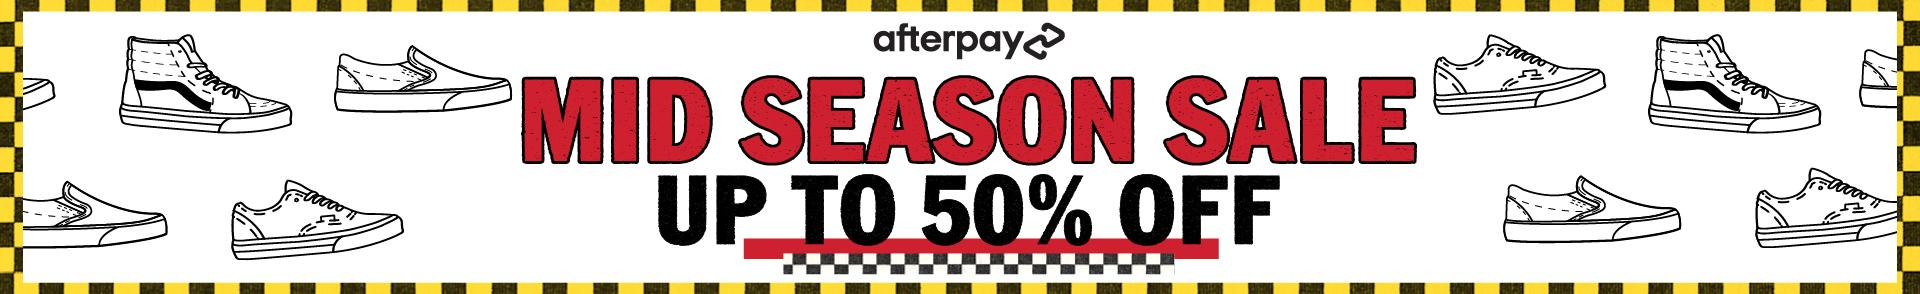 June Sale -Up to 50% Off Selected Styles